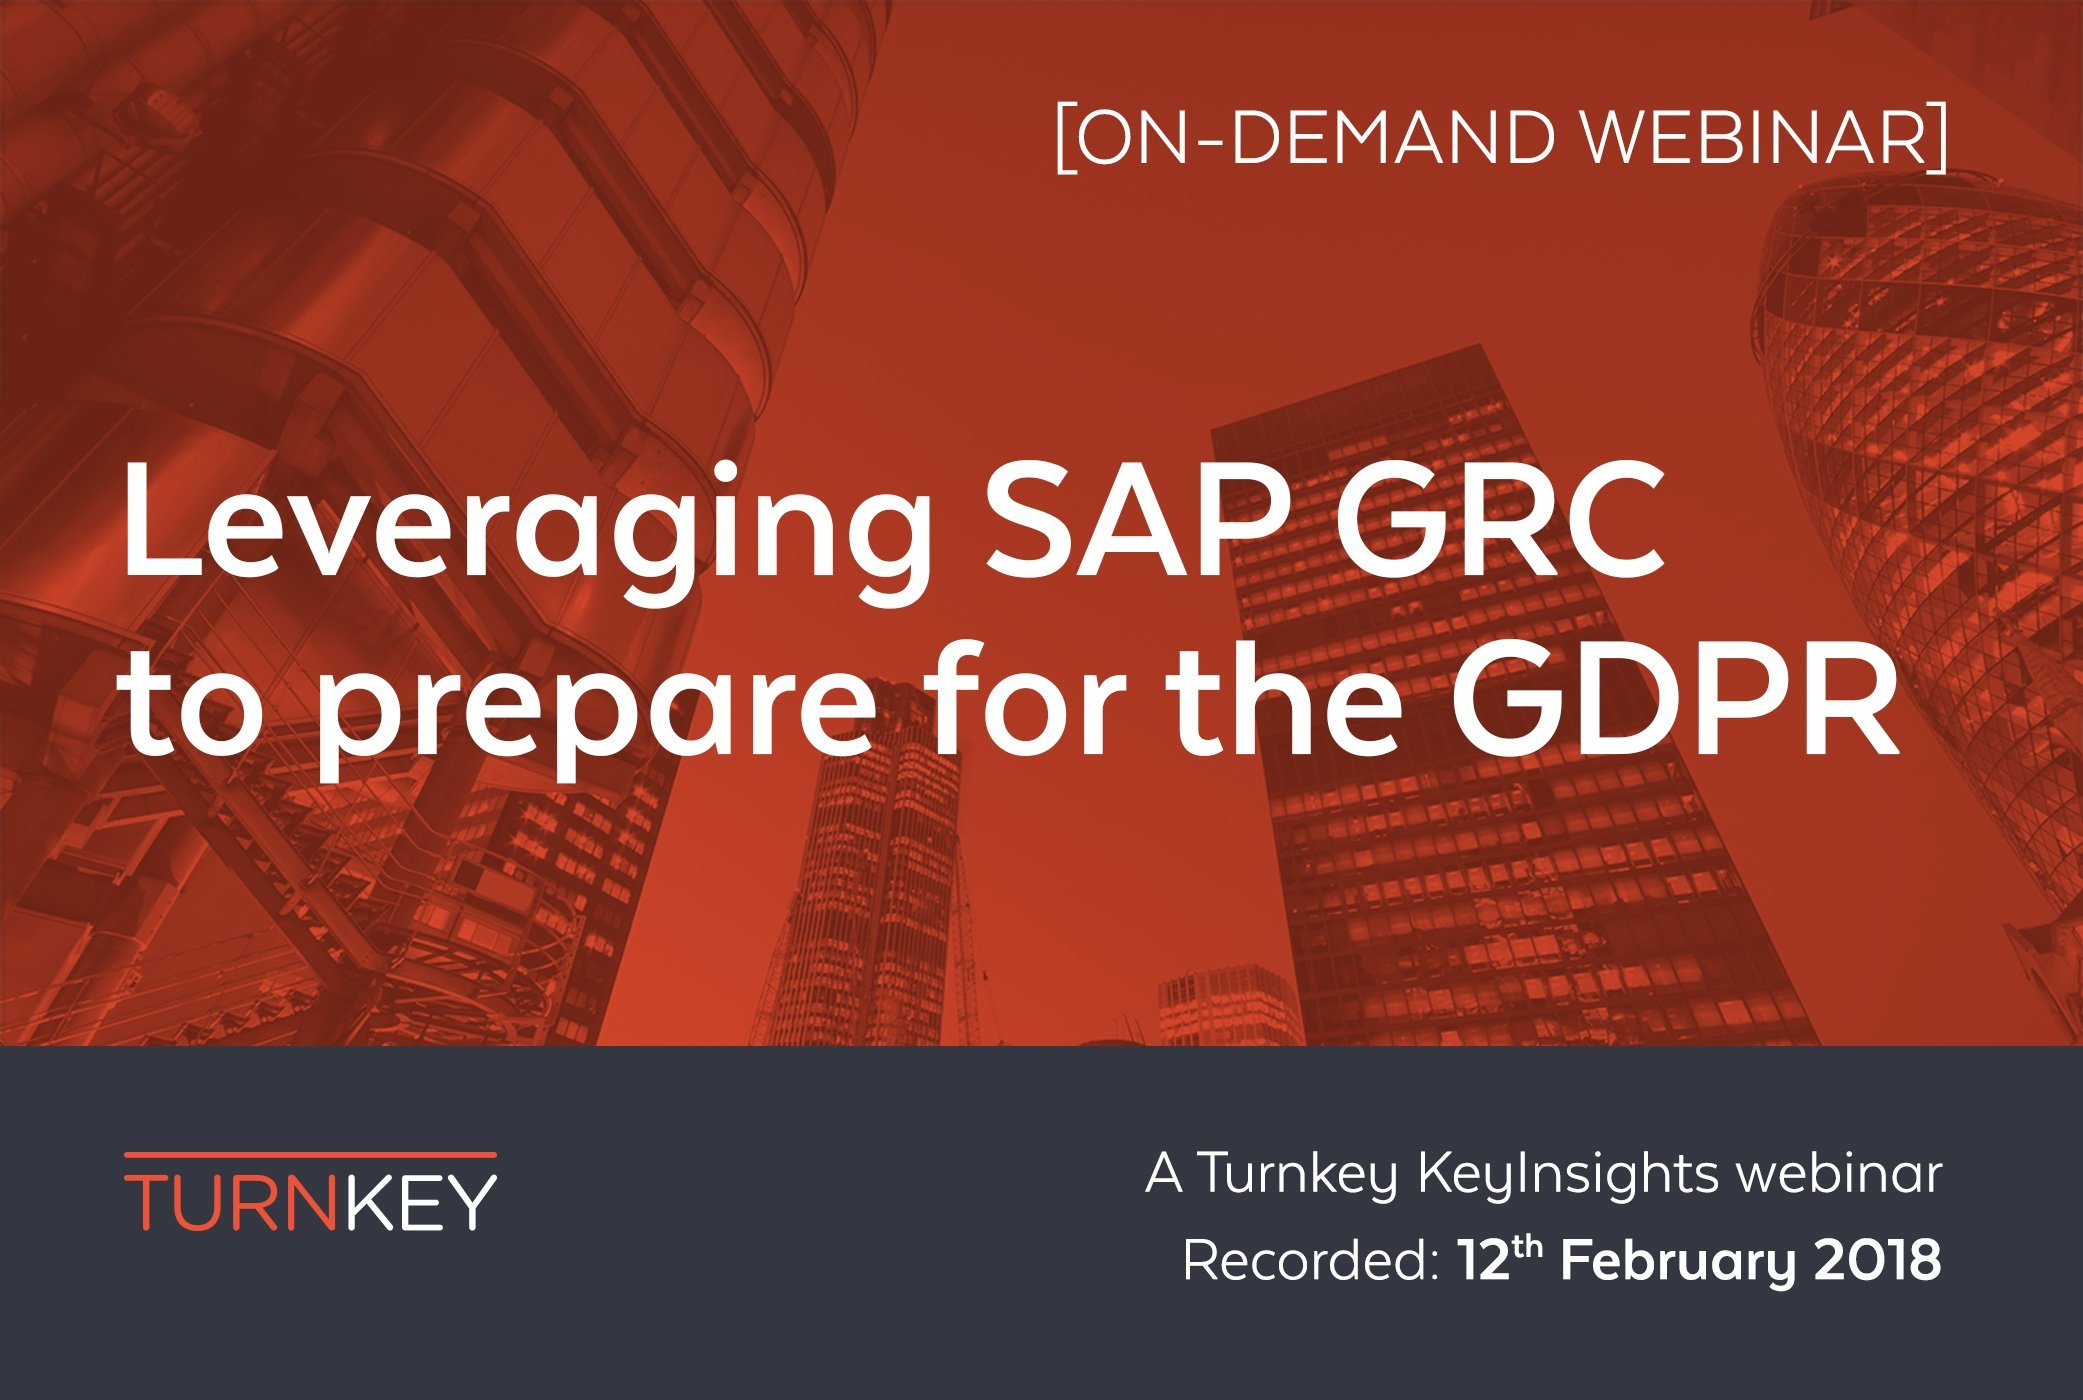 Leveraging%20SAP%20GRC%20On-demand